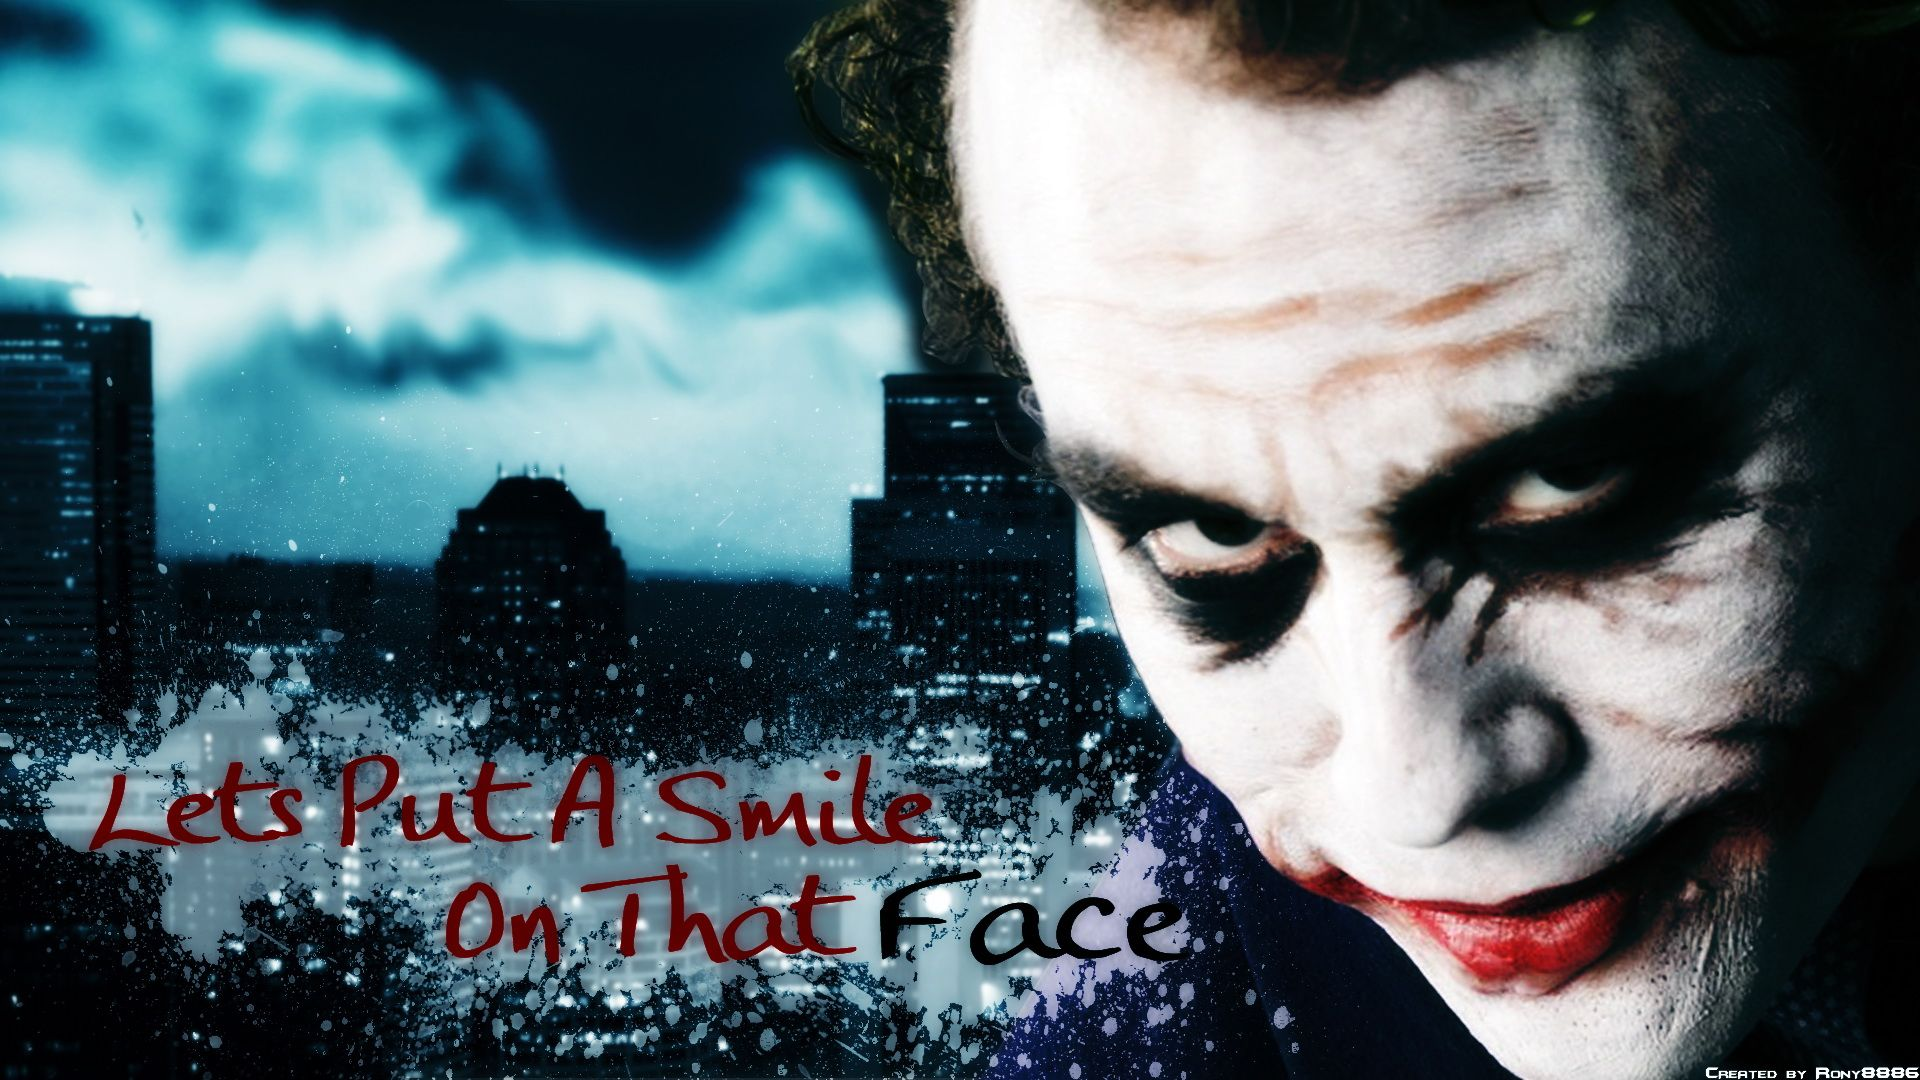 Heath Ledger as The Joker Heath Ledger as The Joker